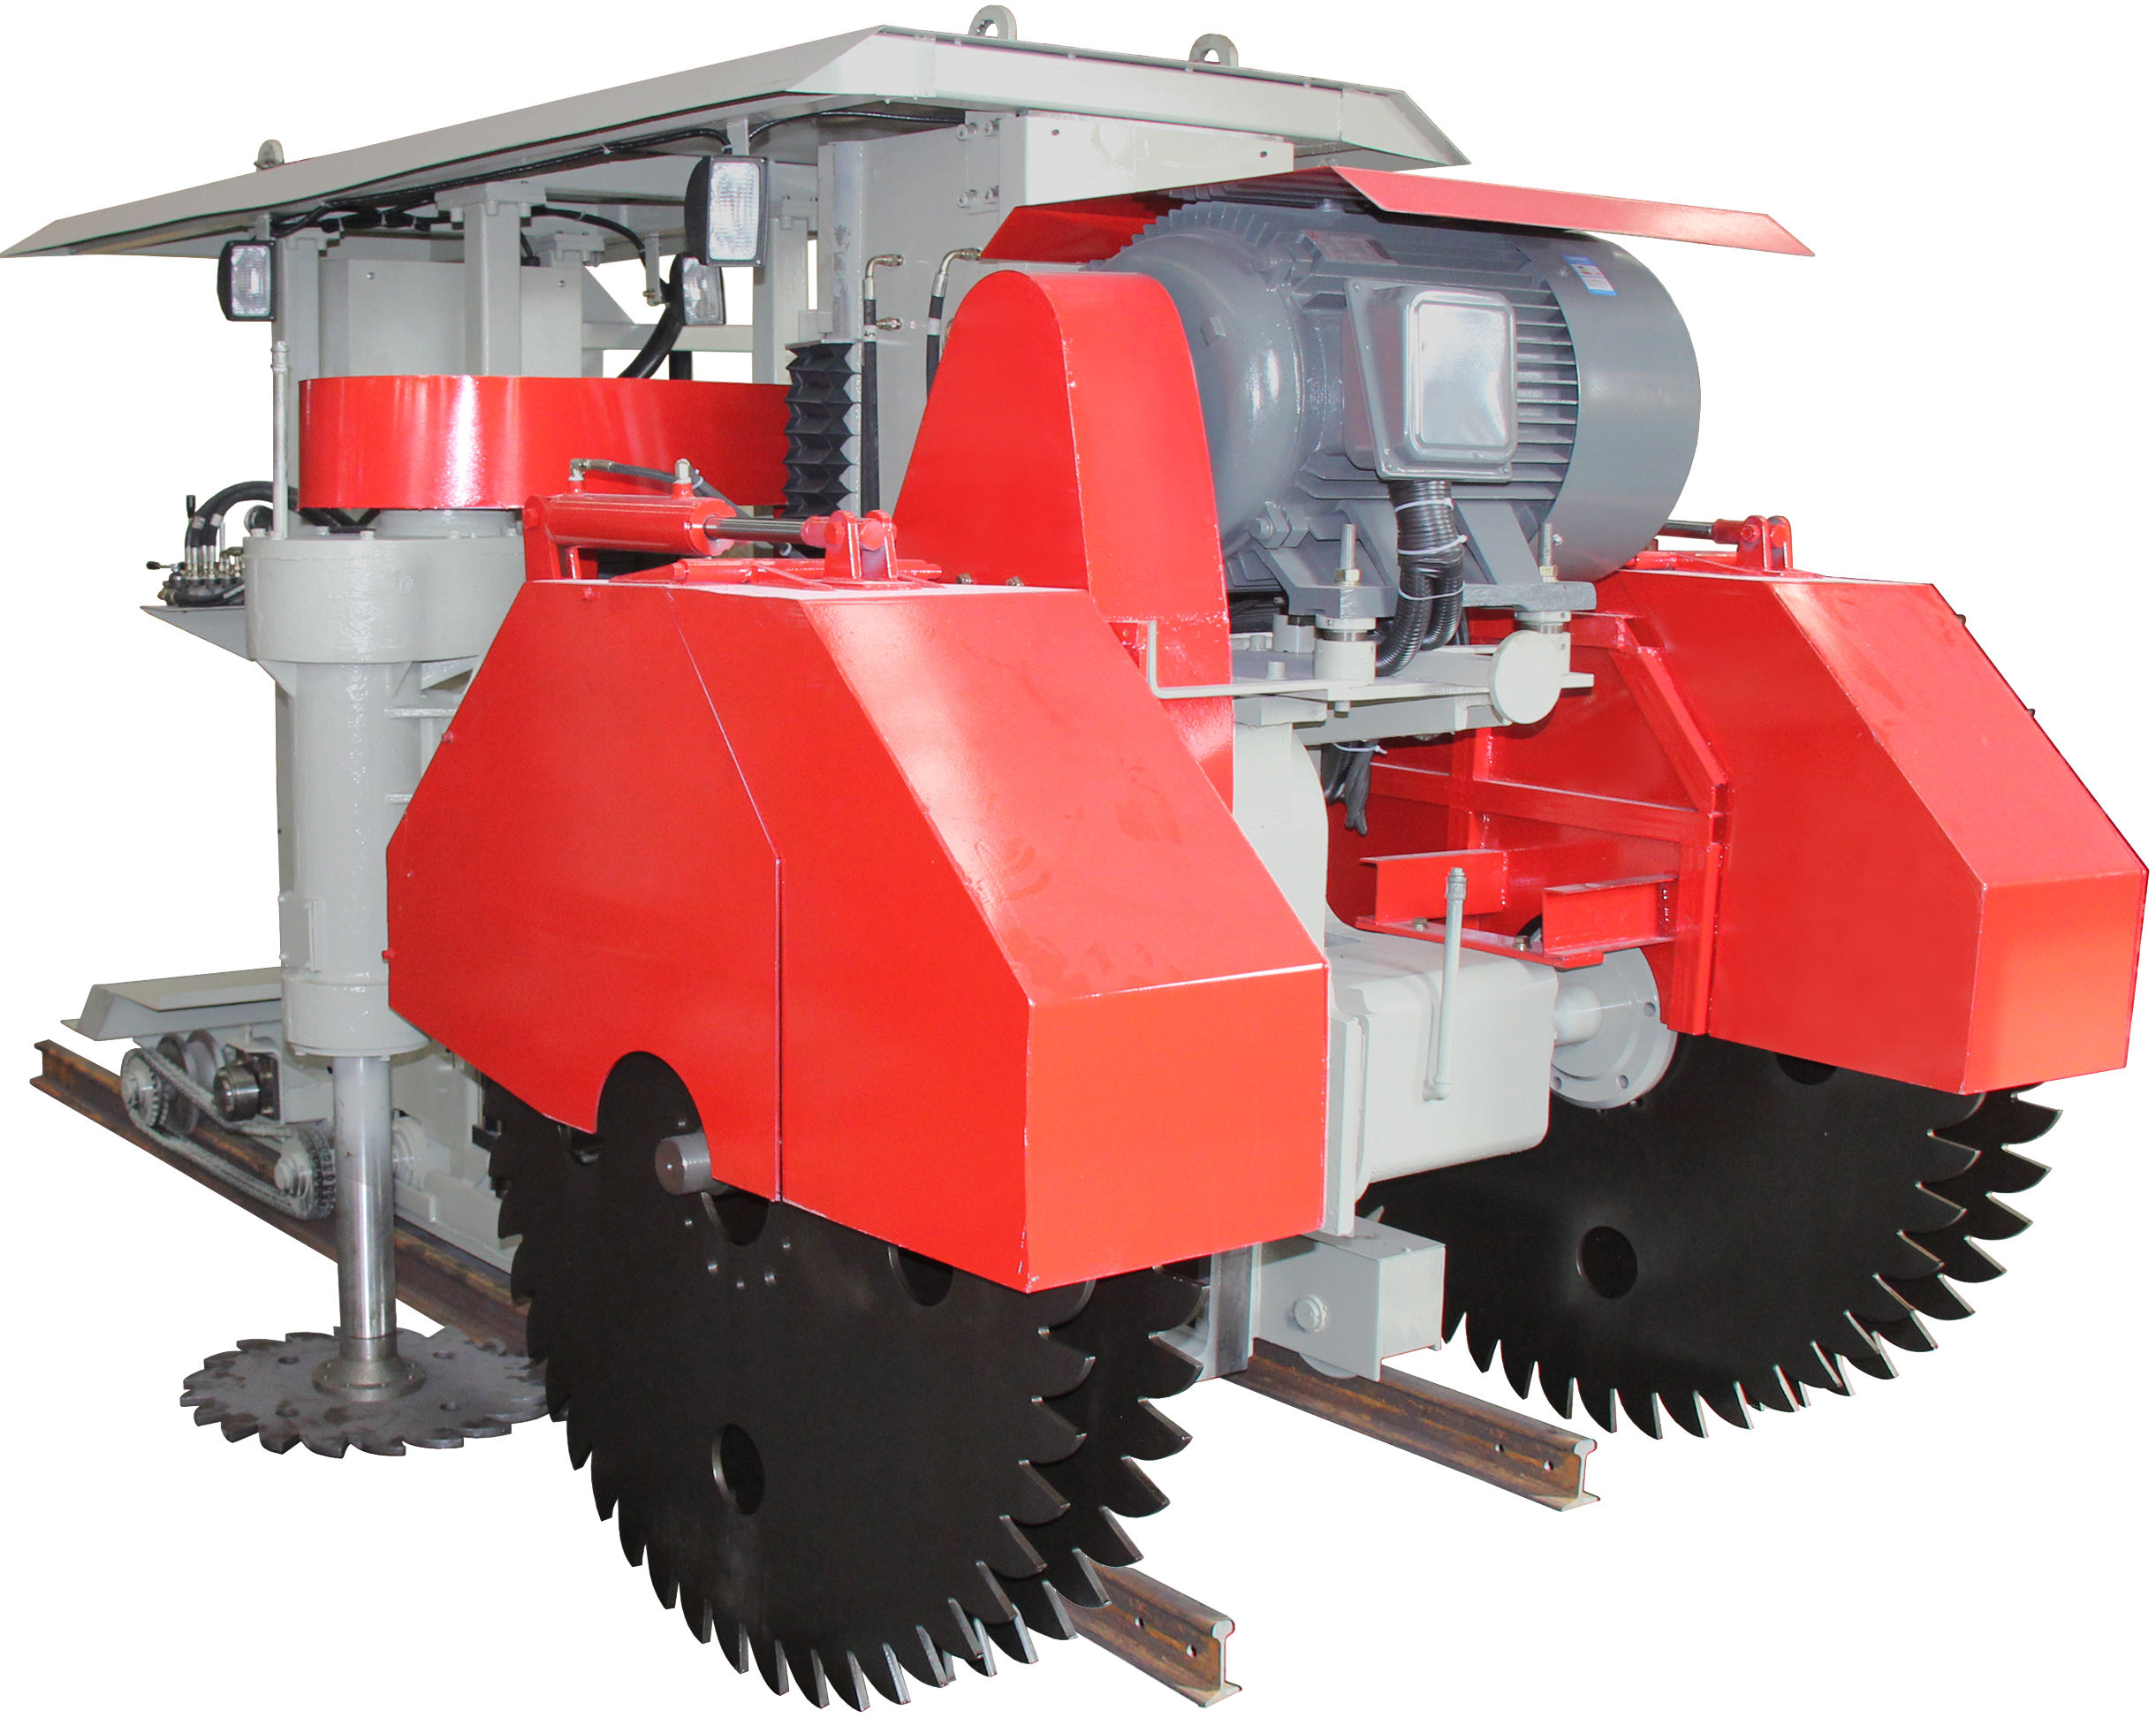 Hualong stonemachinery HKSS-1400 diesel vertical horizontal Quarry Stone Cutting Machine for houses brick Kenya